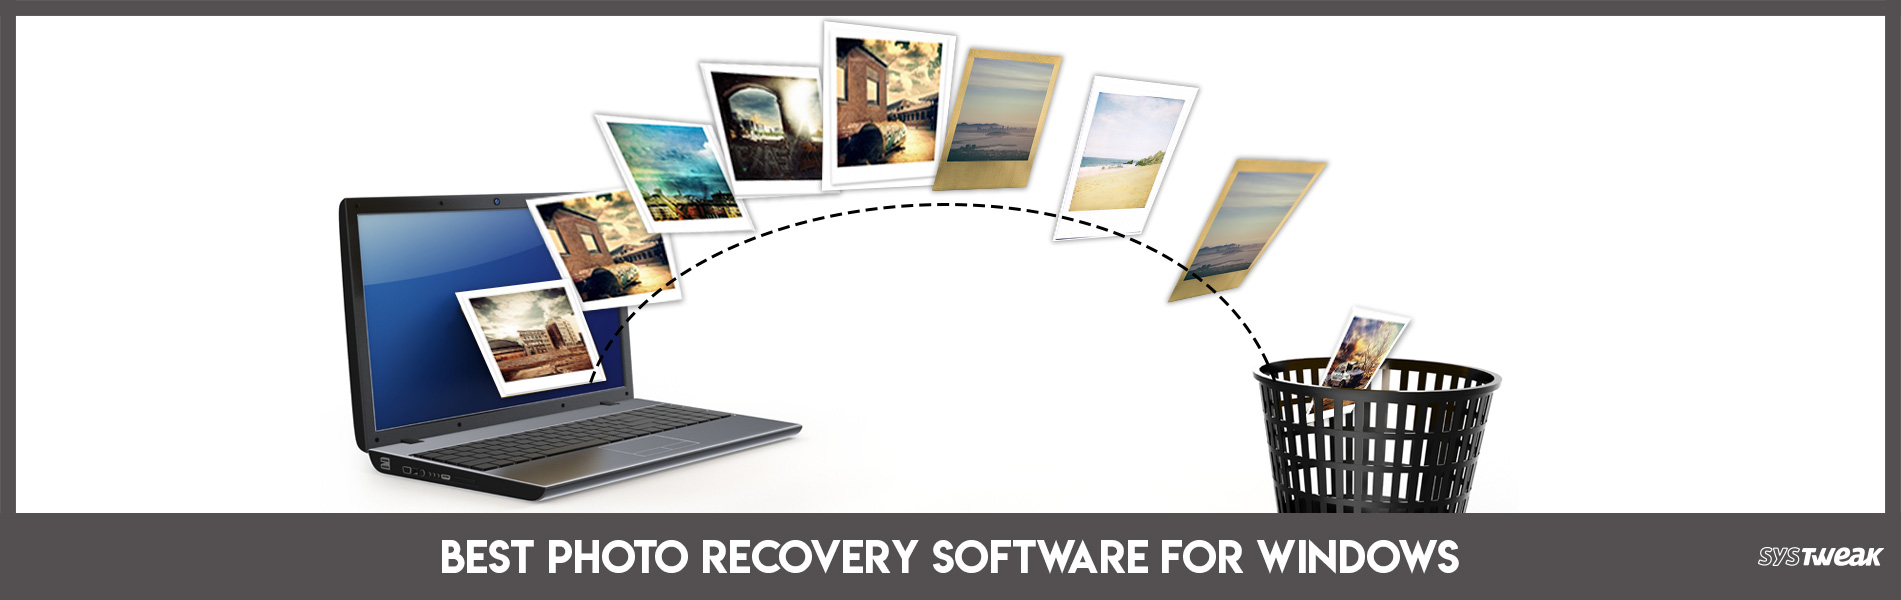 10 Best Photo Recovery Software For Windows 10, 8, 7 PC In 2018